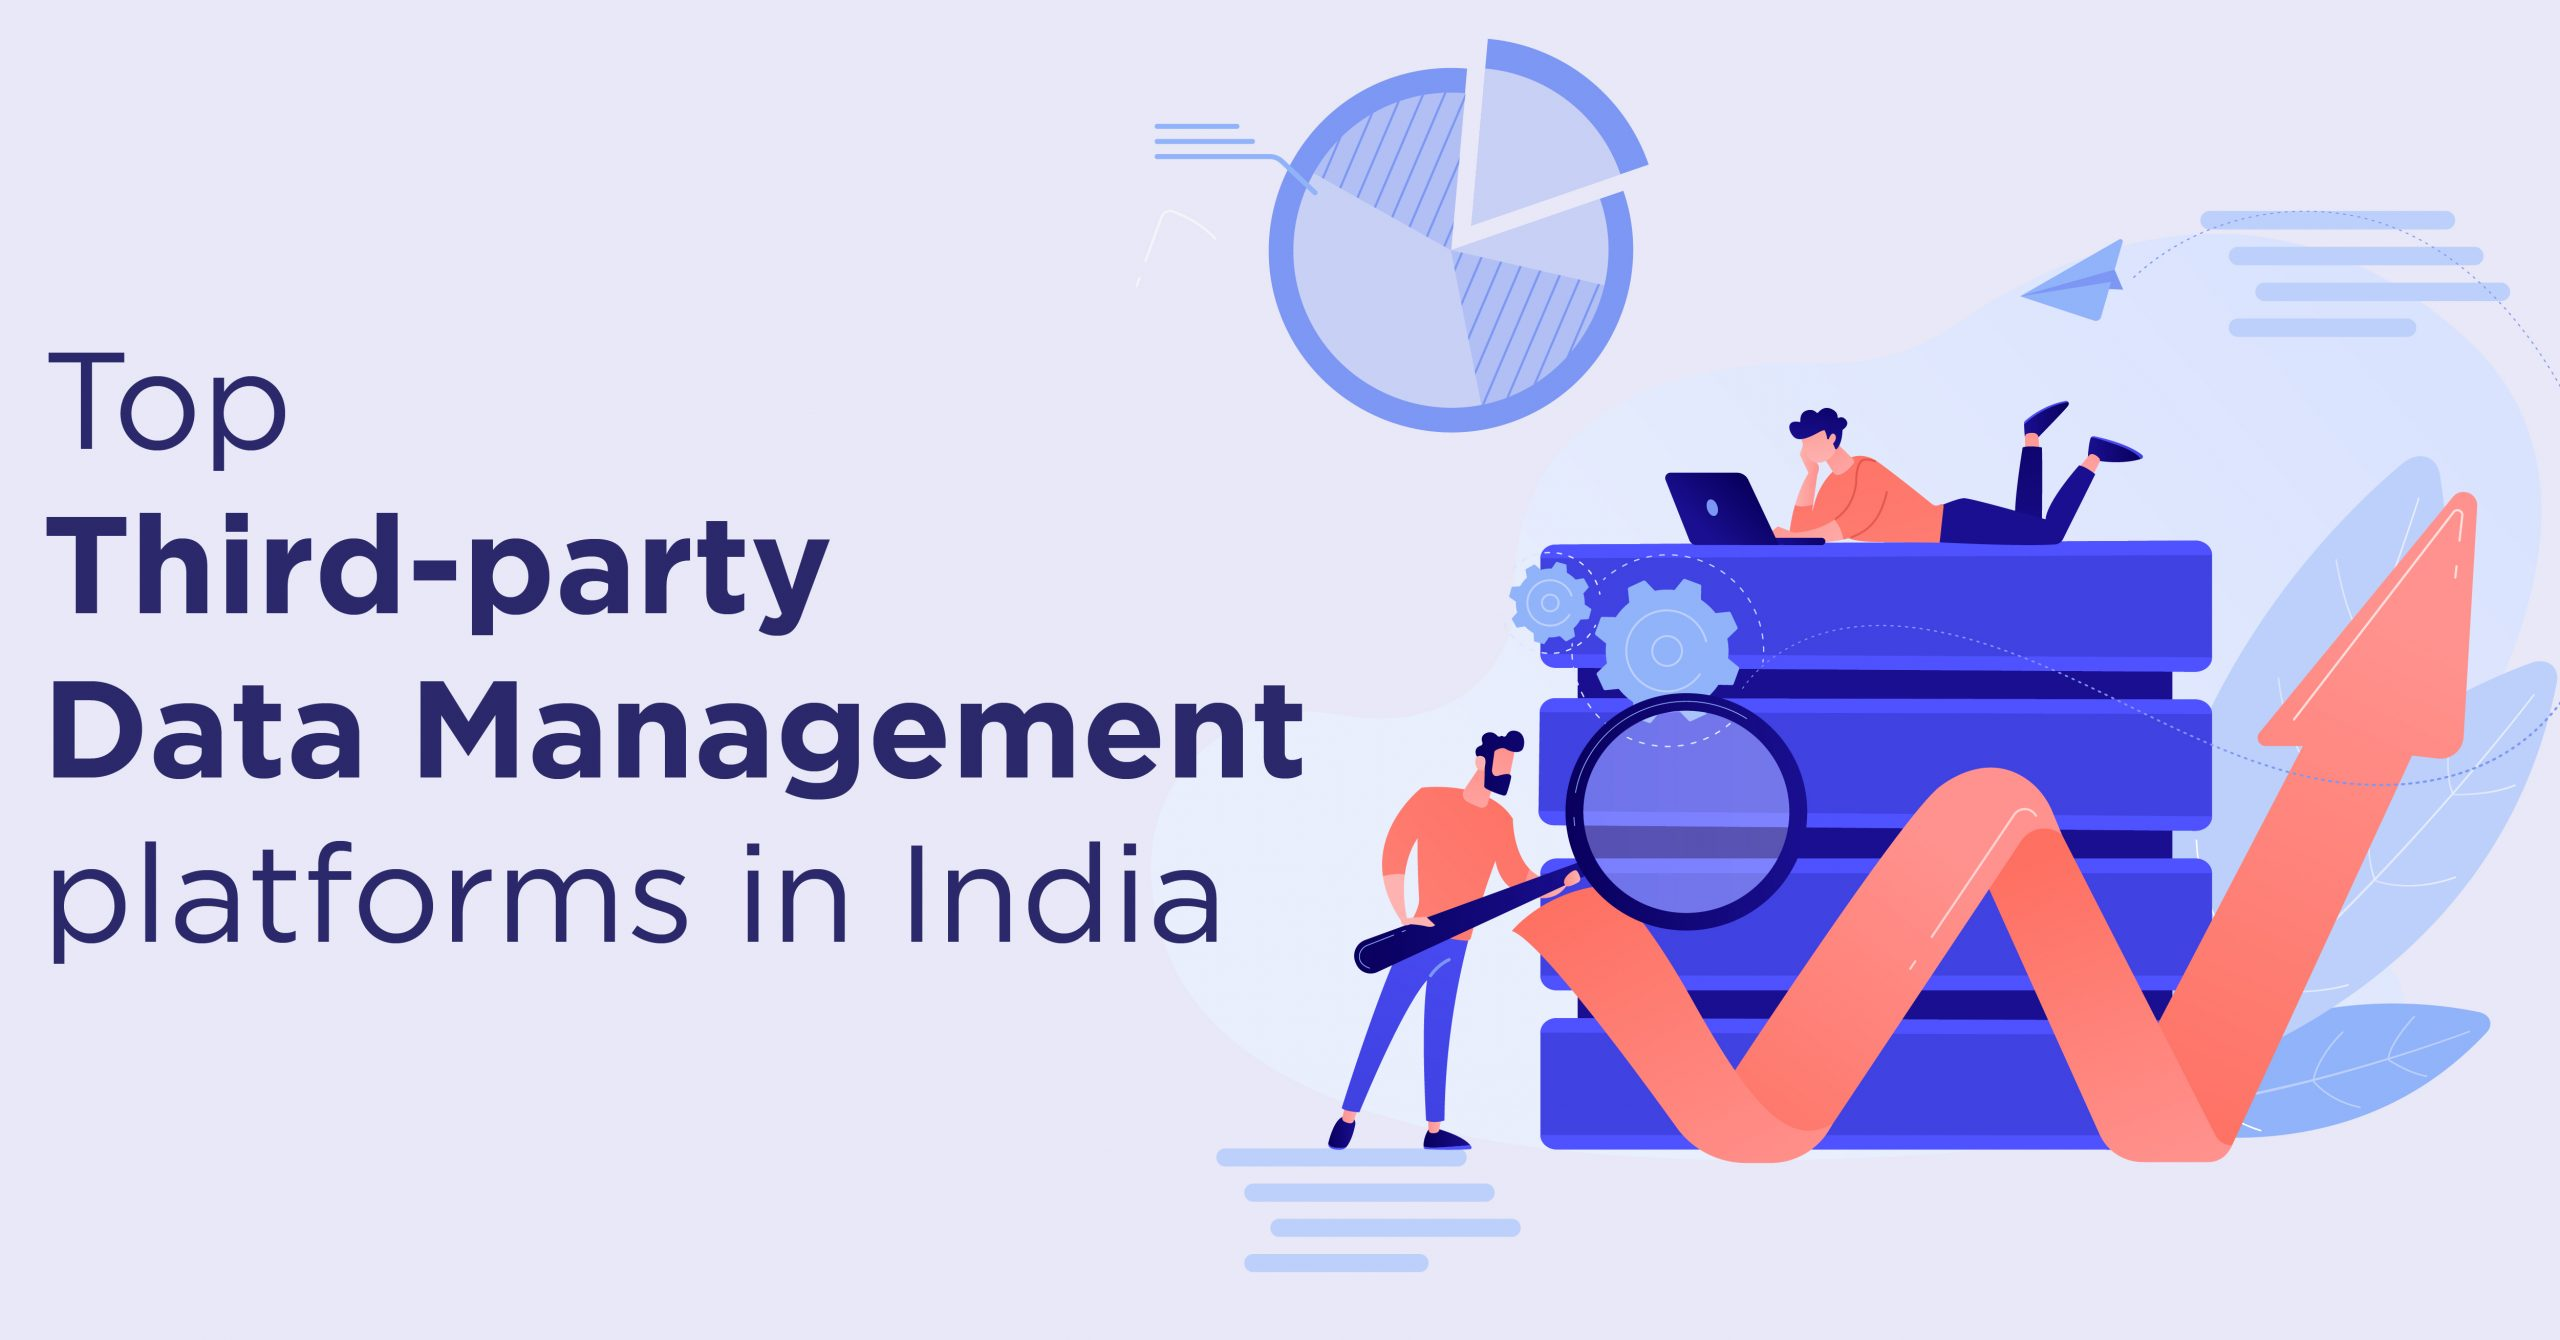 Top Third-party Data Management platforms in India